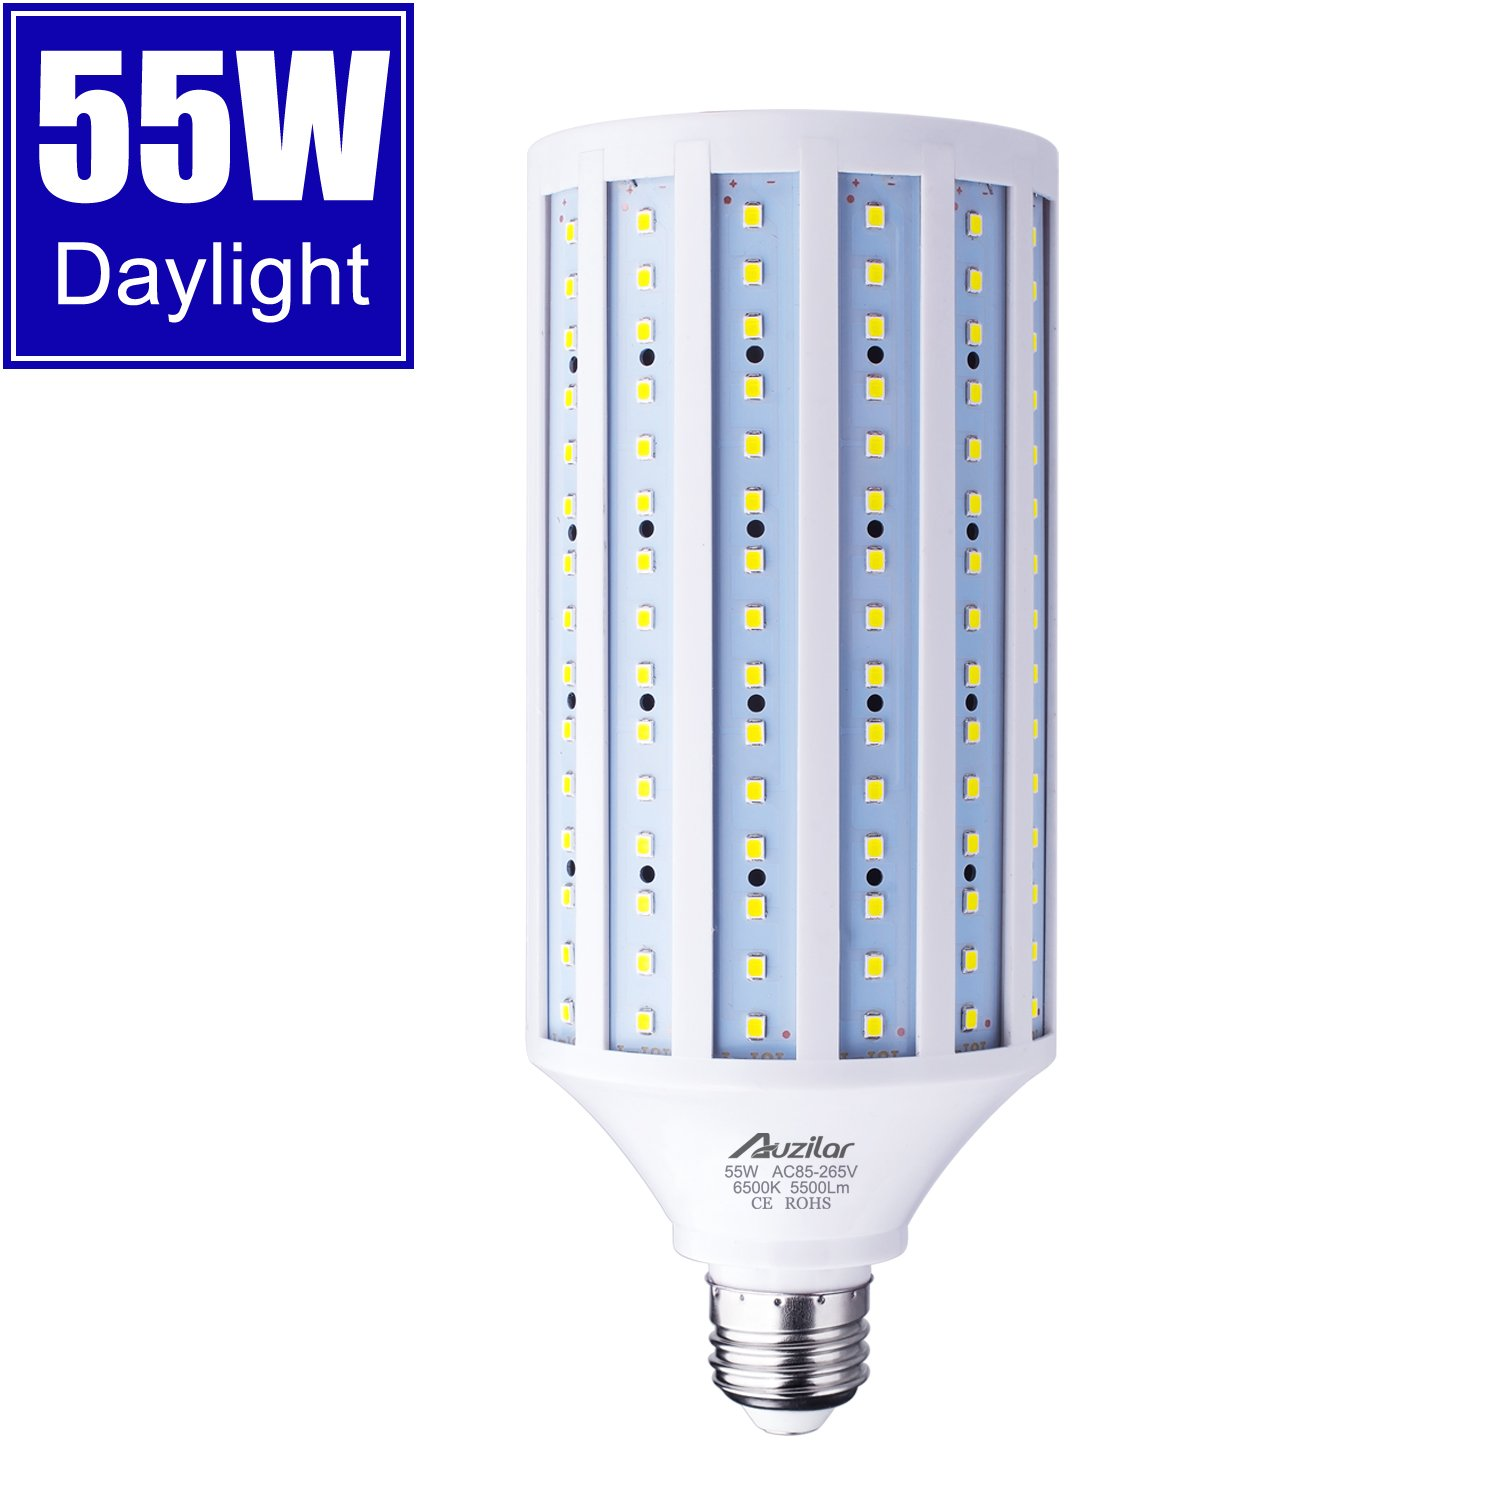 55W LED Corn Light Bulb for Indoor Outdoor Large Area, E26 5500Lm 6500K Cool White,Super Bright Daylight LED Corn Bulb for Garage Barn Workshop Warehouse Factory Porch Backyard High Bay, 85V-265V